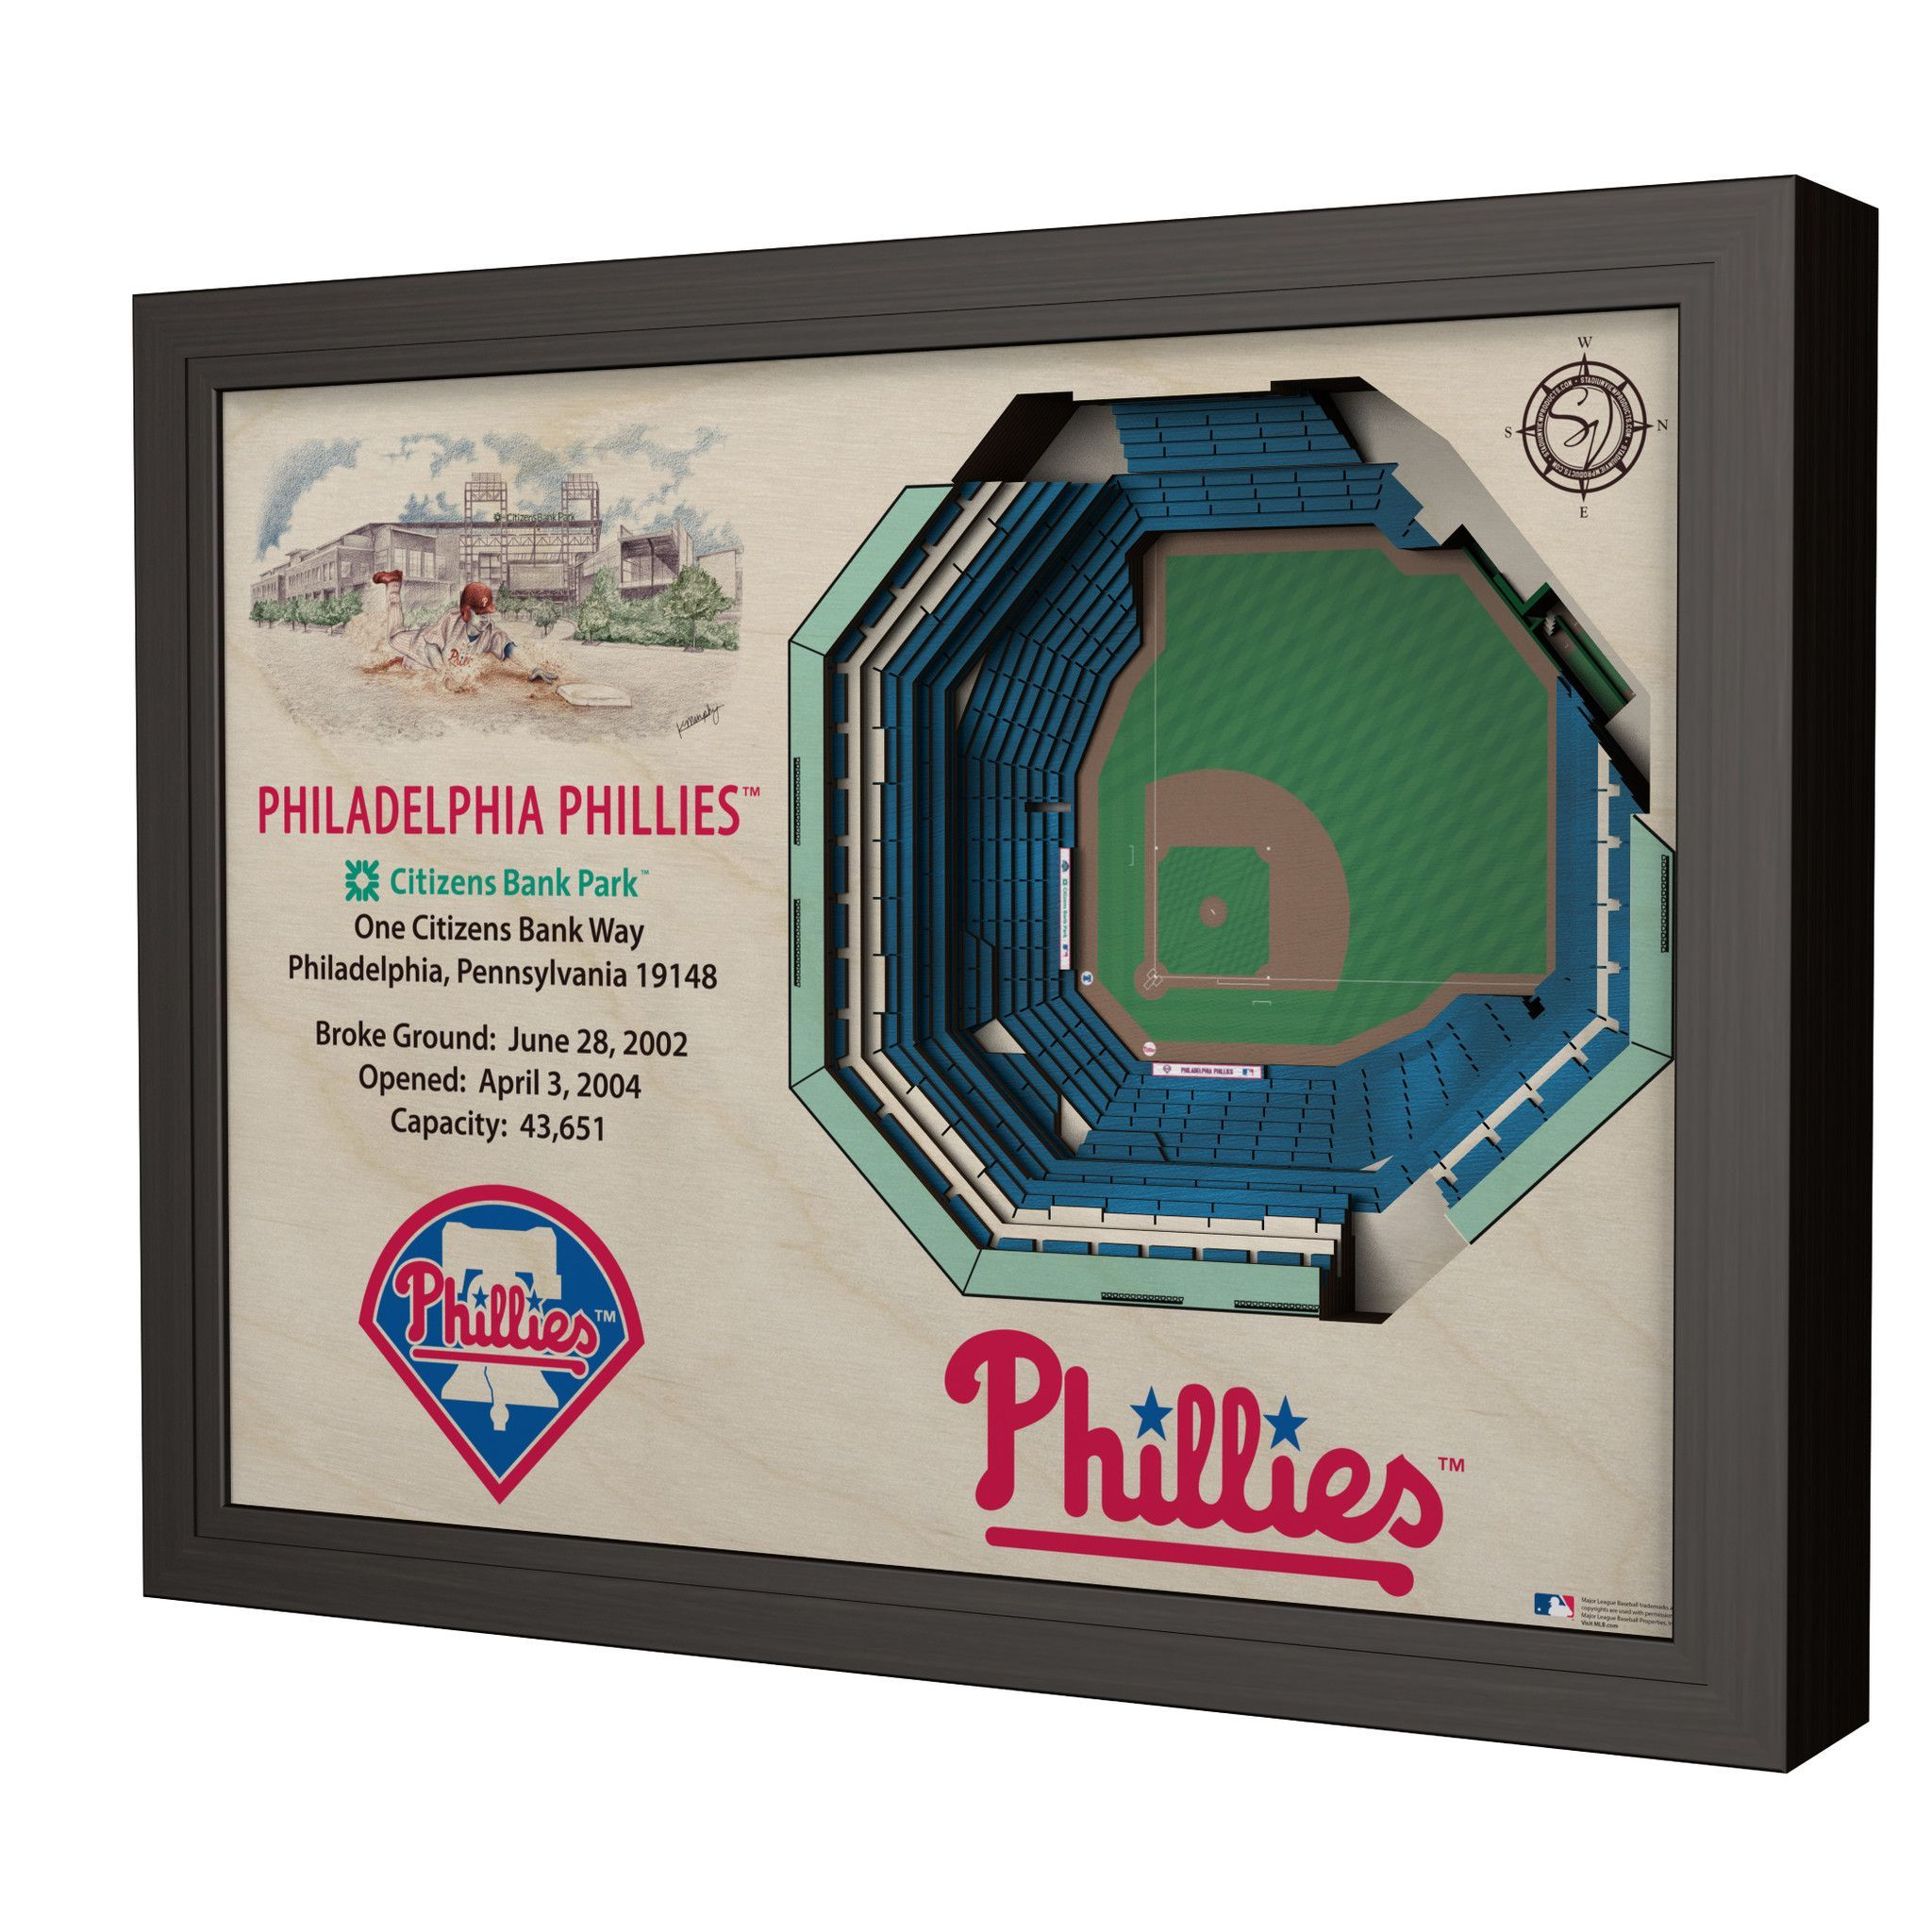 Philadelphia Phillies Citizens Bank Park Stadium 3D View